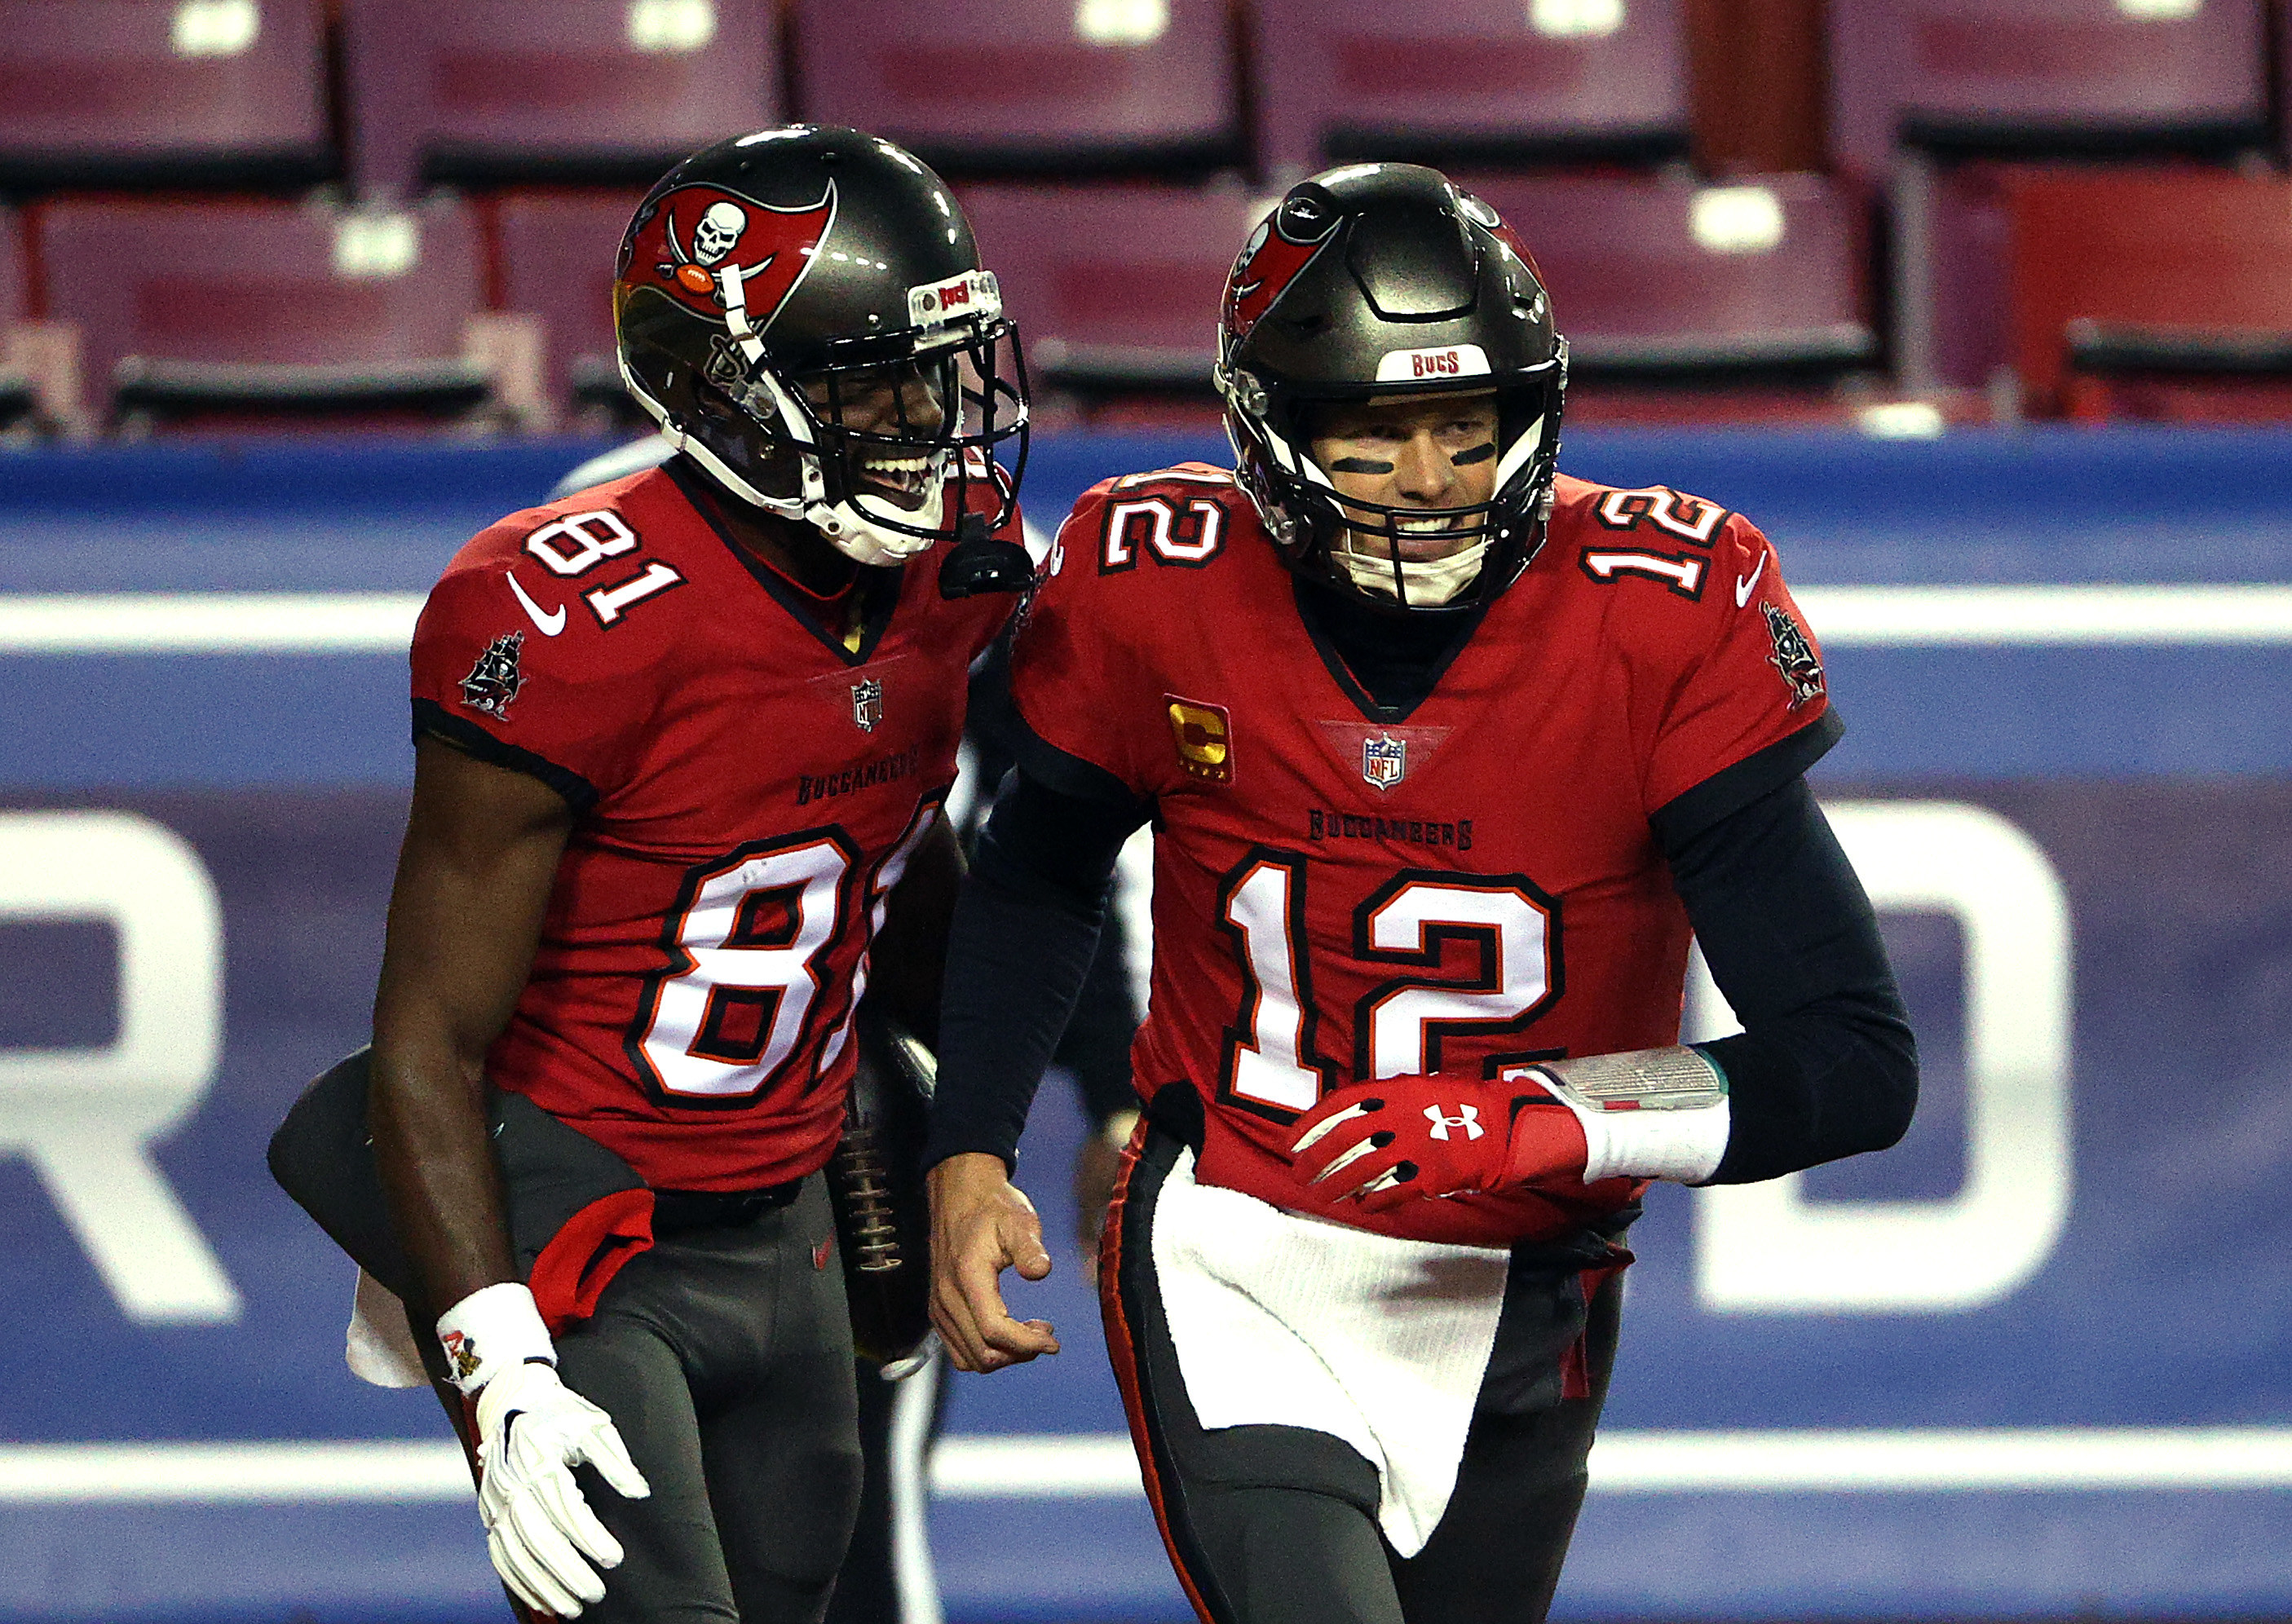 Black and red Buccaneer uniforms